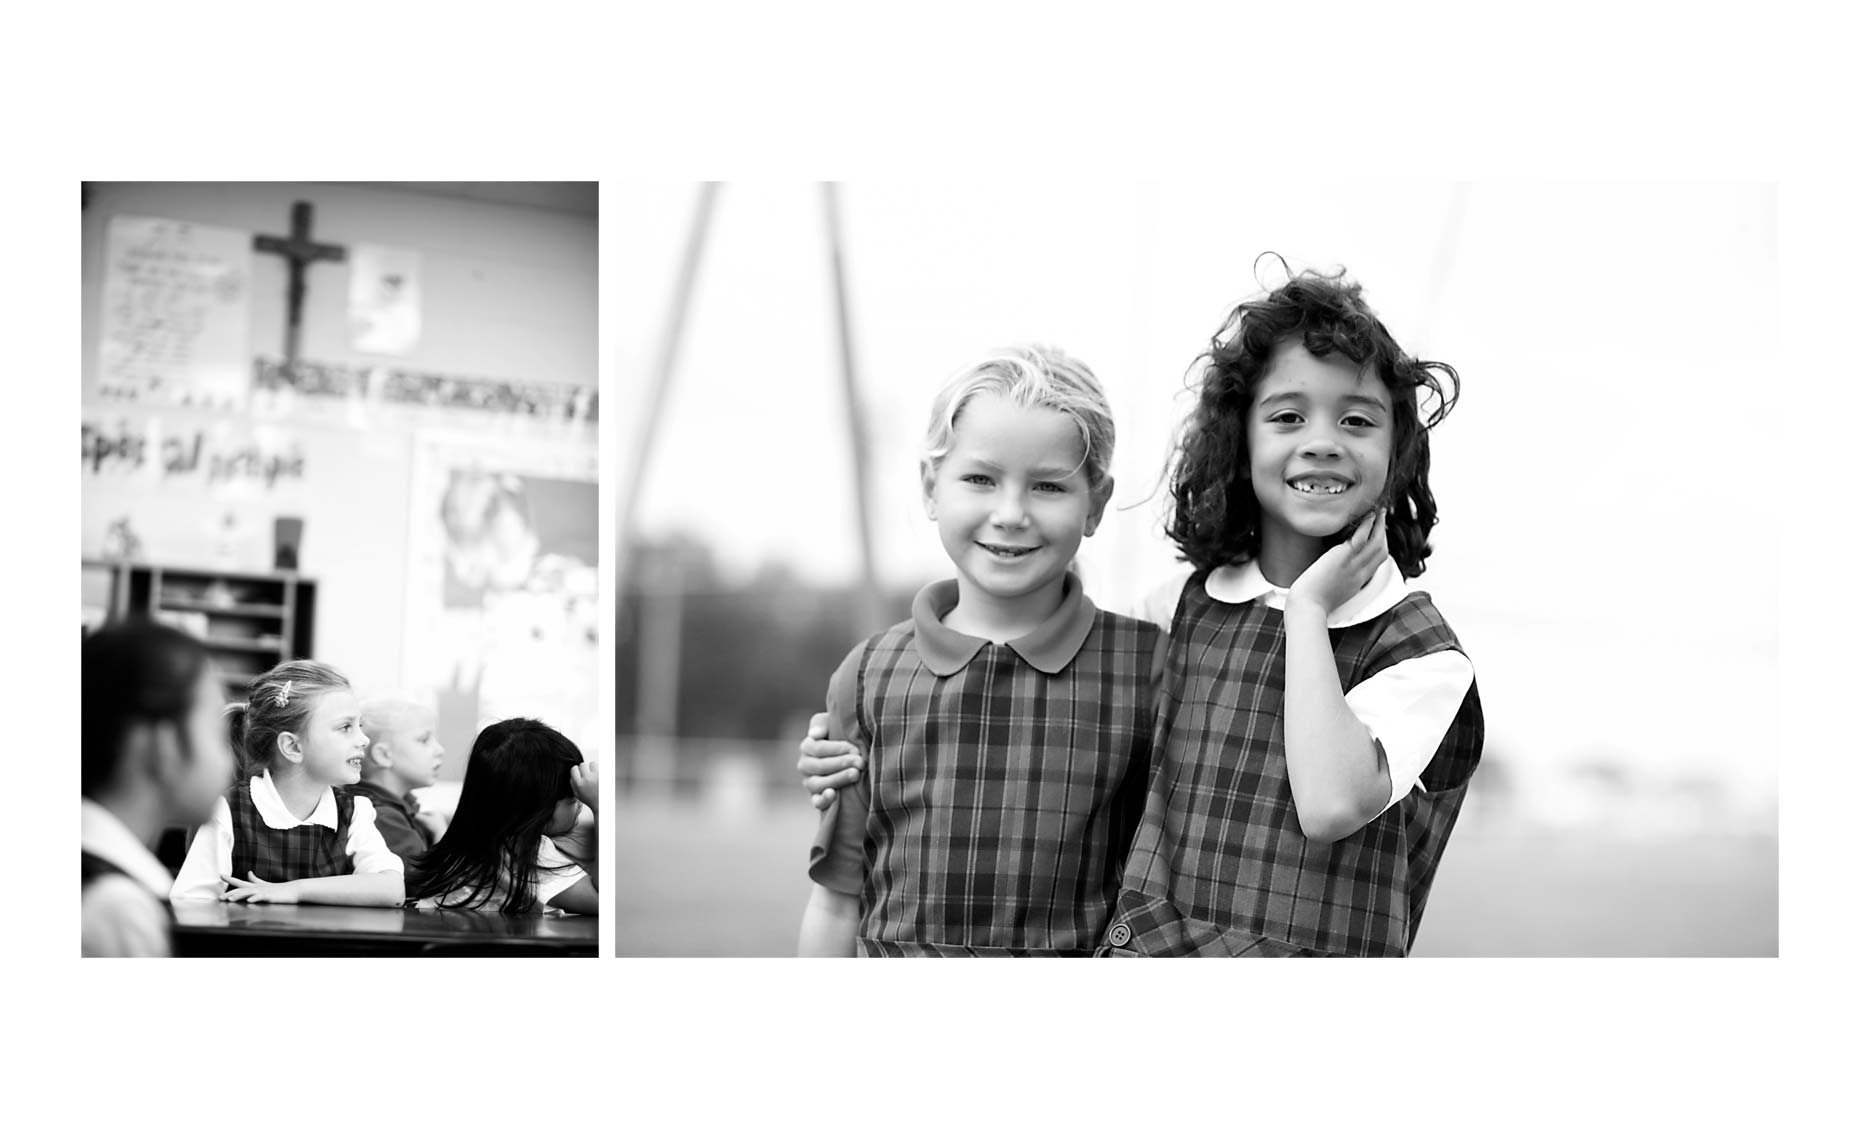 Black and white portraits of Catholic School girls